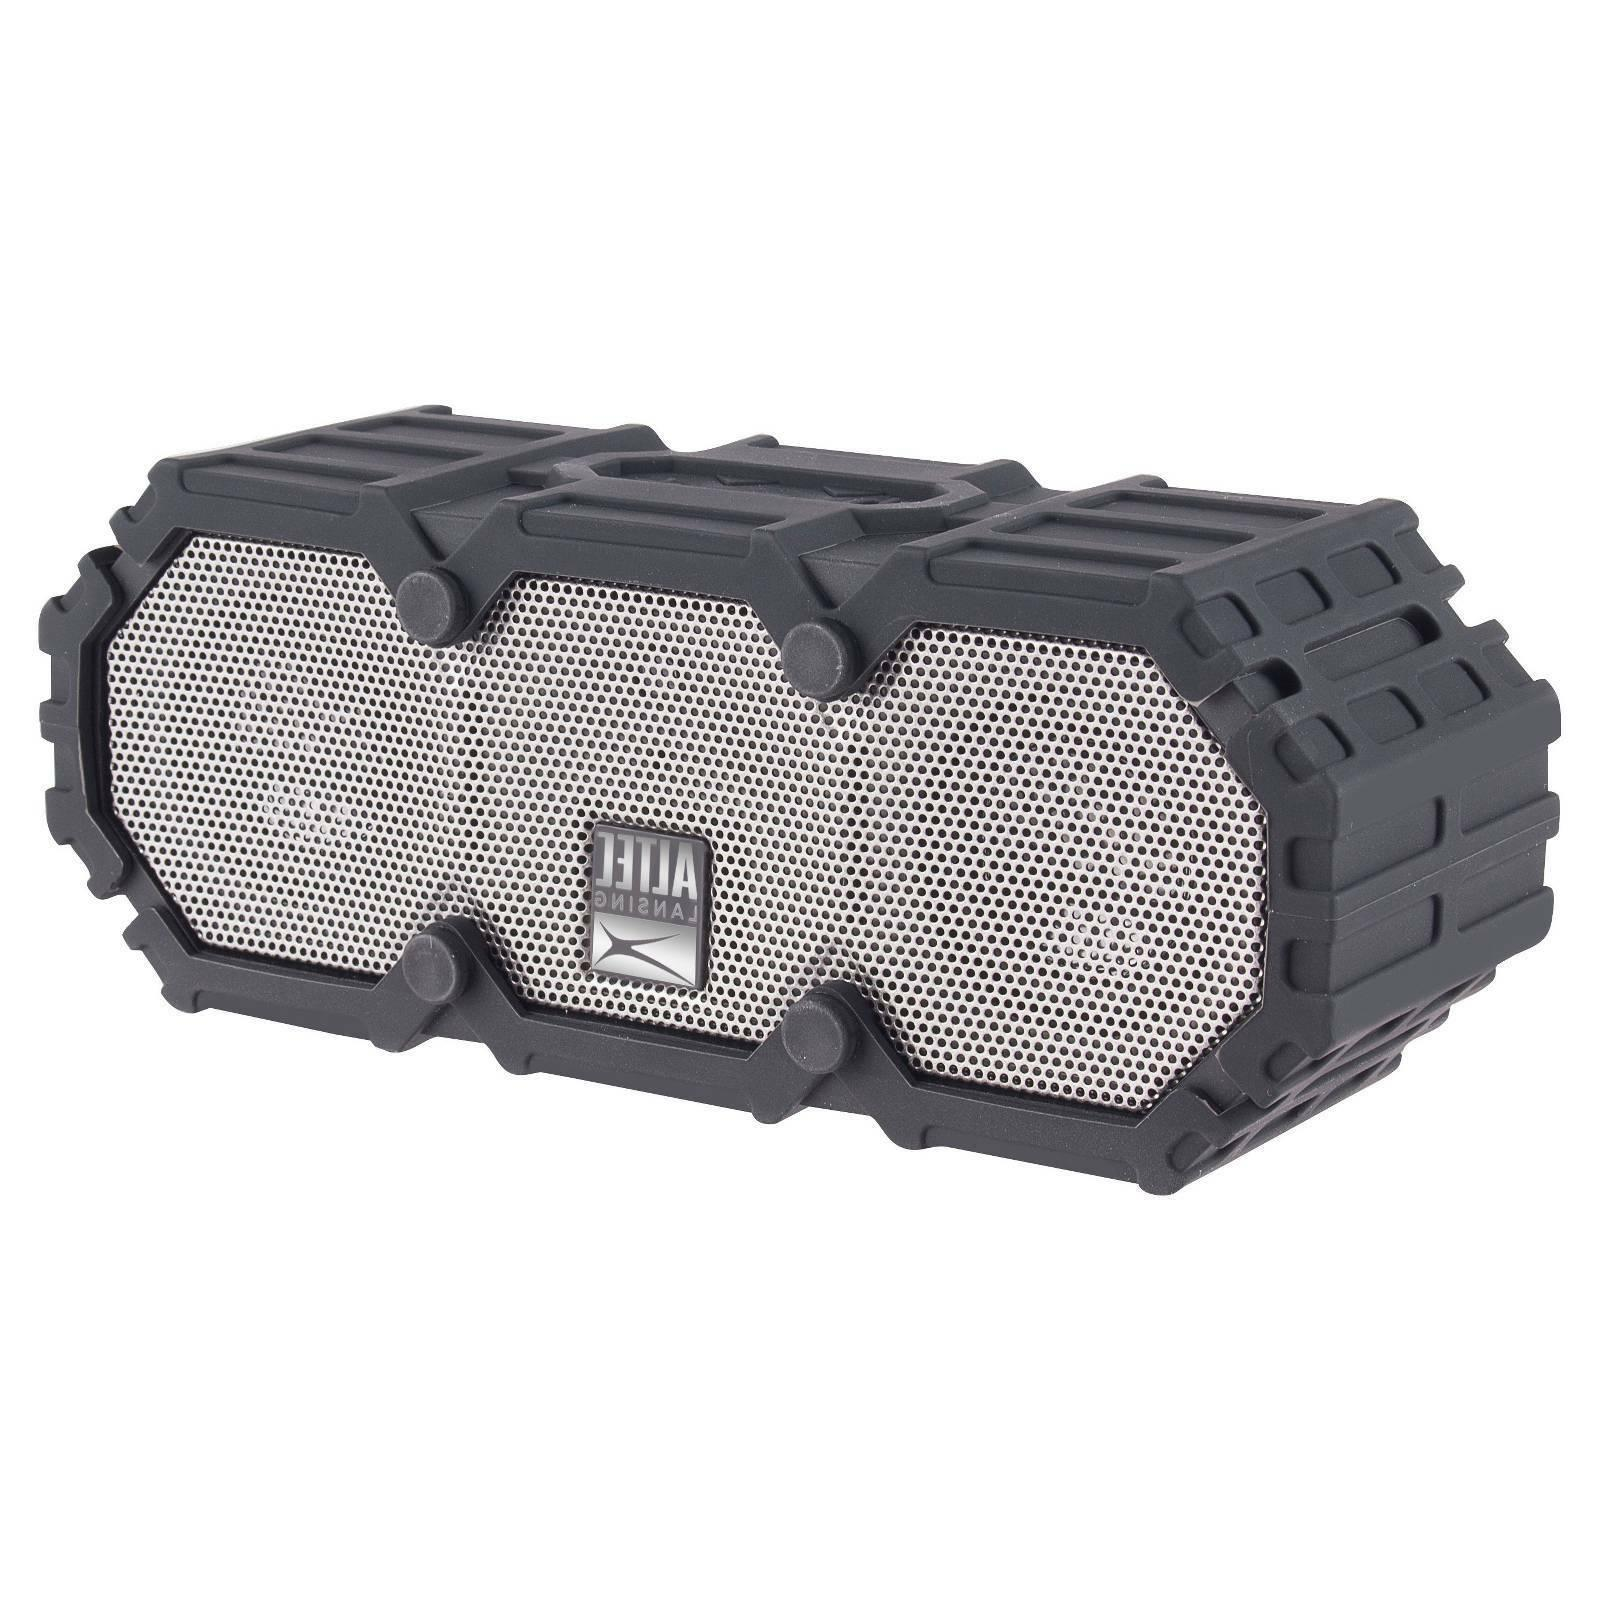 mini lifejacket 3 rugged waterproof bluetooth speaker